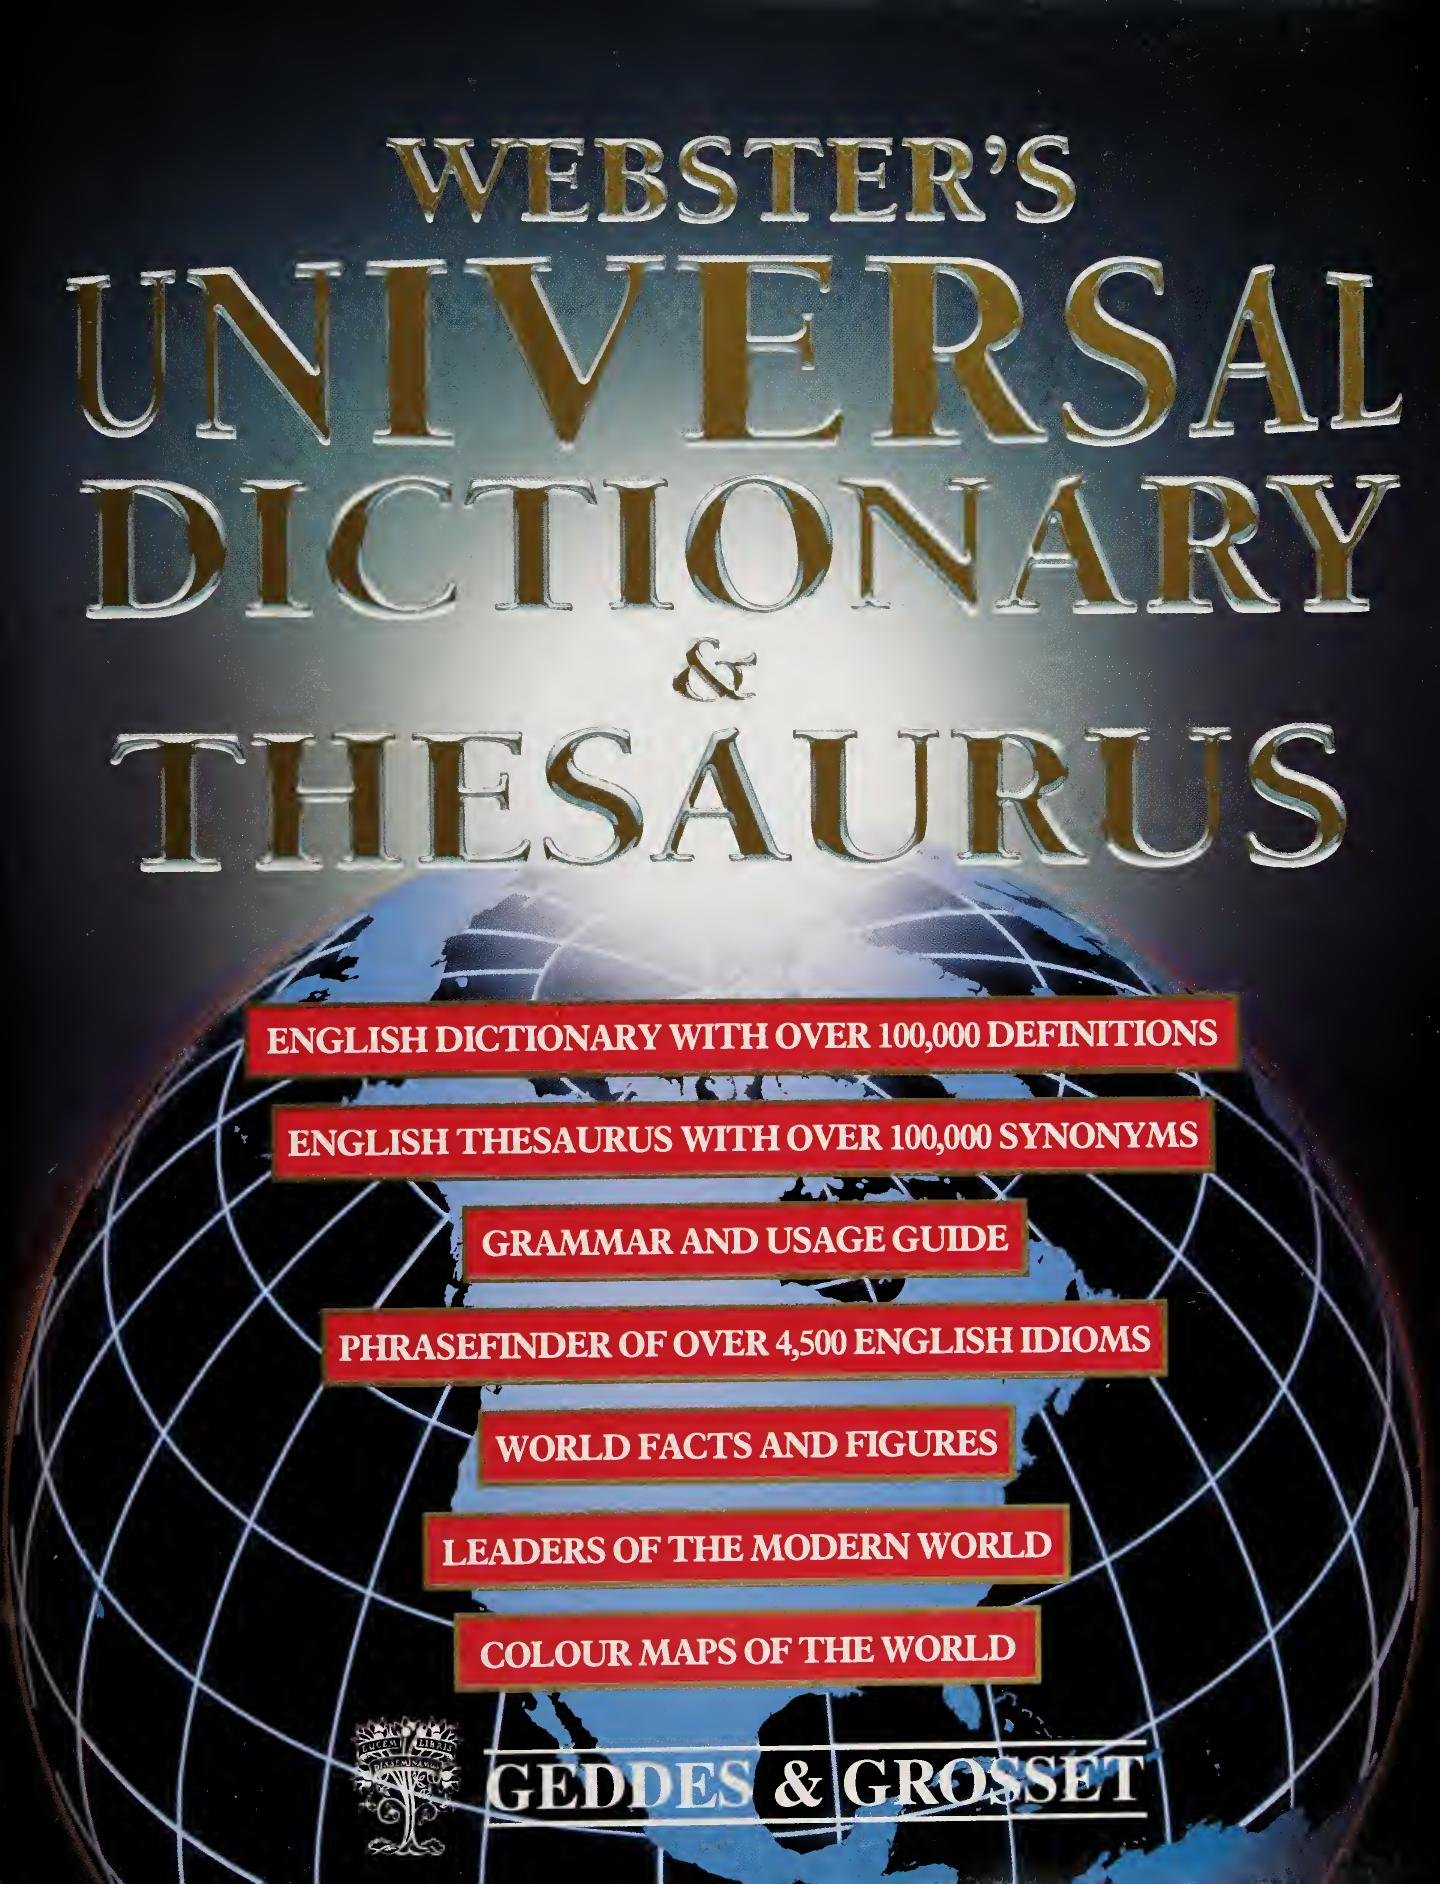 Webster's Universal Dictionary and Thesaurus-P2P